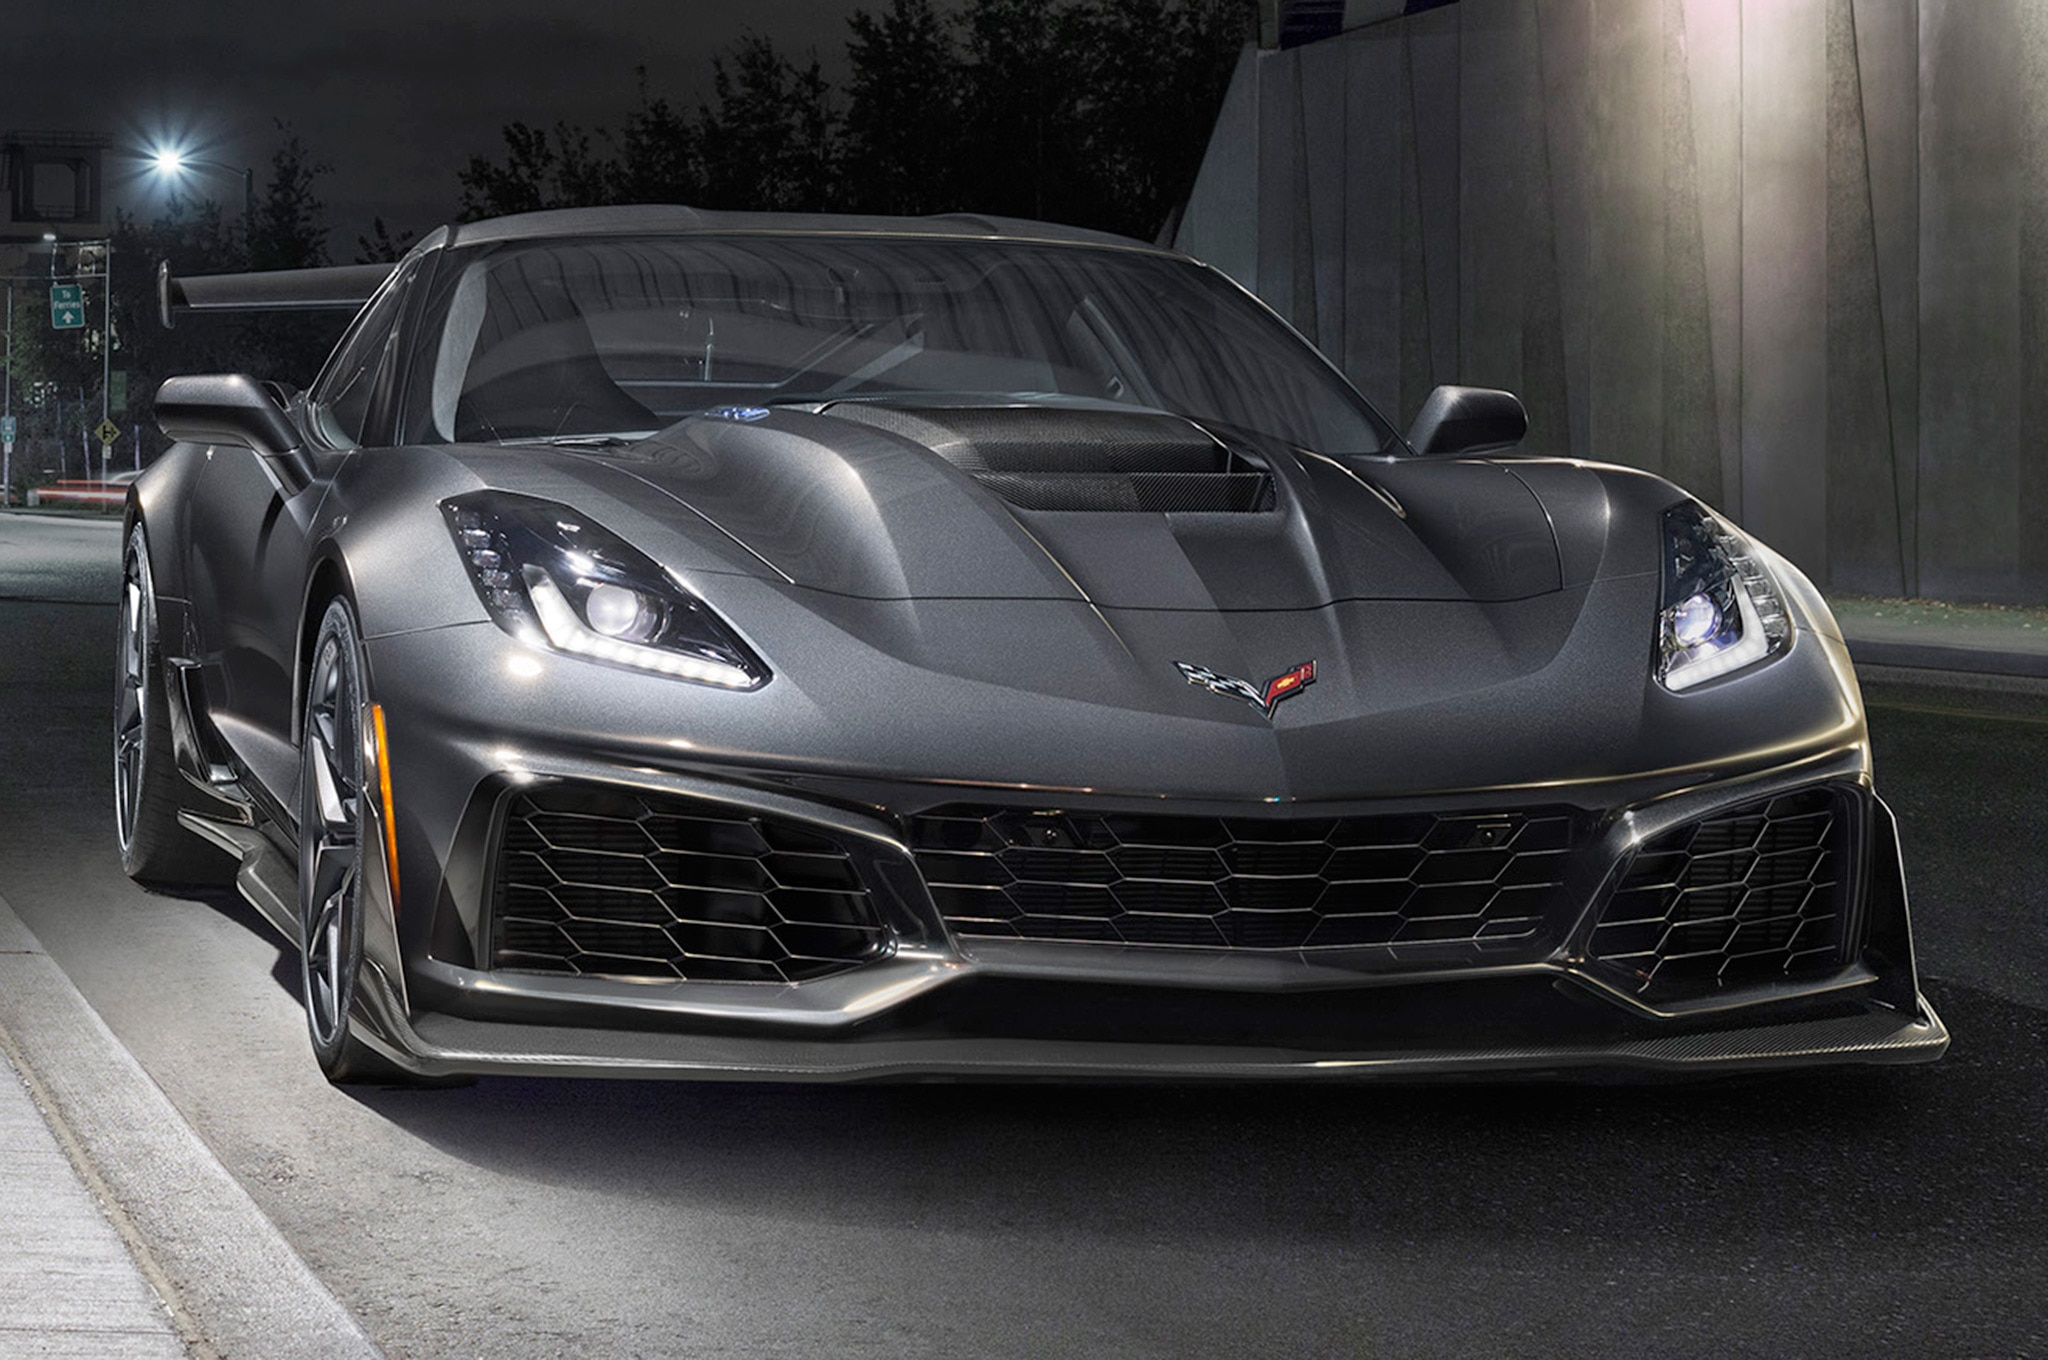 First Look: With the new 2019 Corvette ZR1, Chevy builds the best 'Vette yet